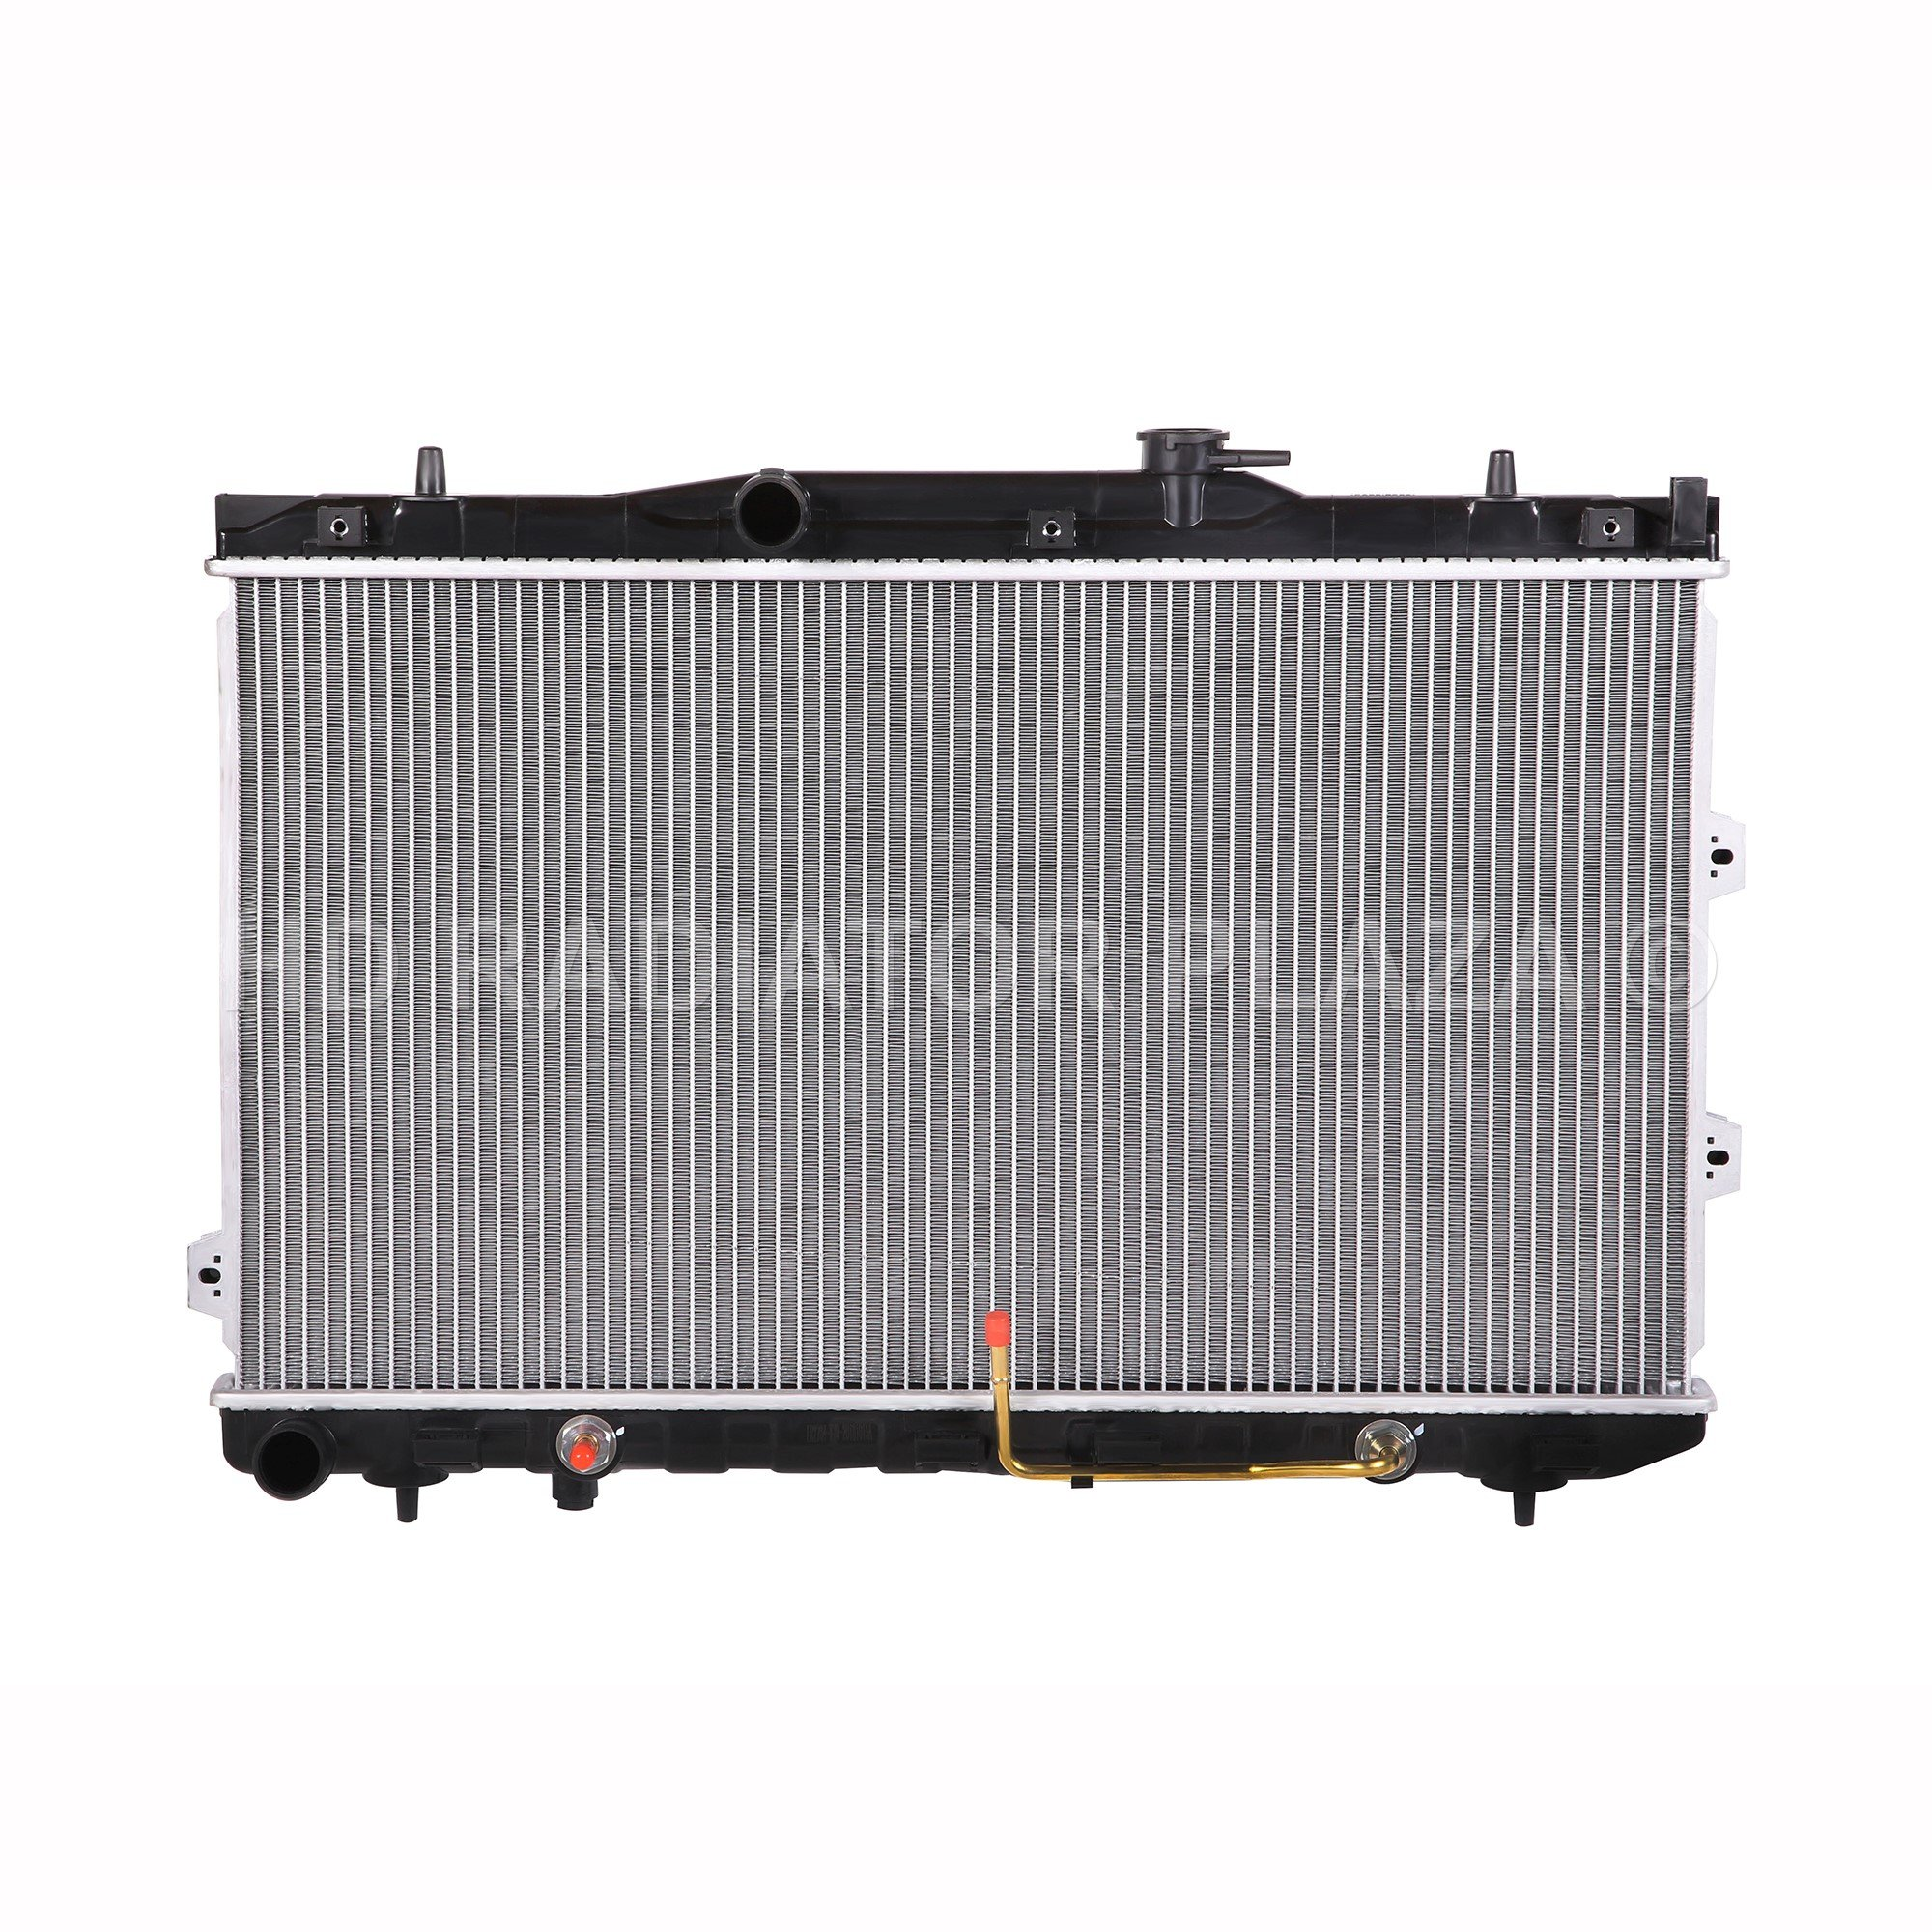 Radiator for 04-09 Kia Spectra/Spectra5